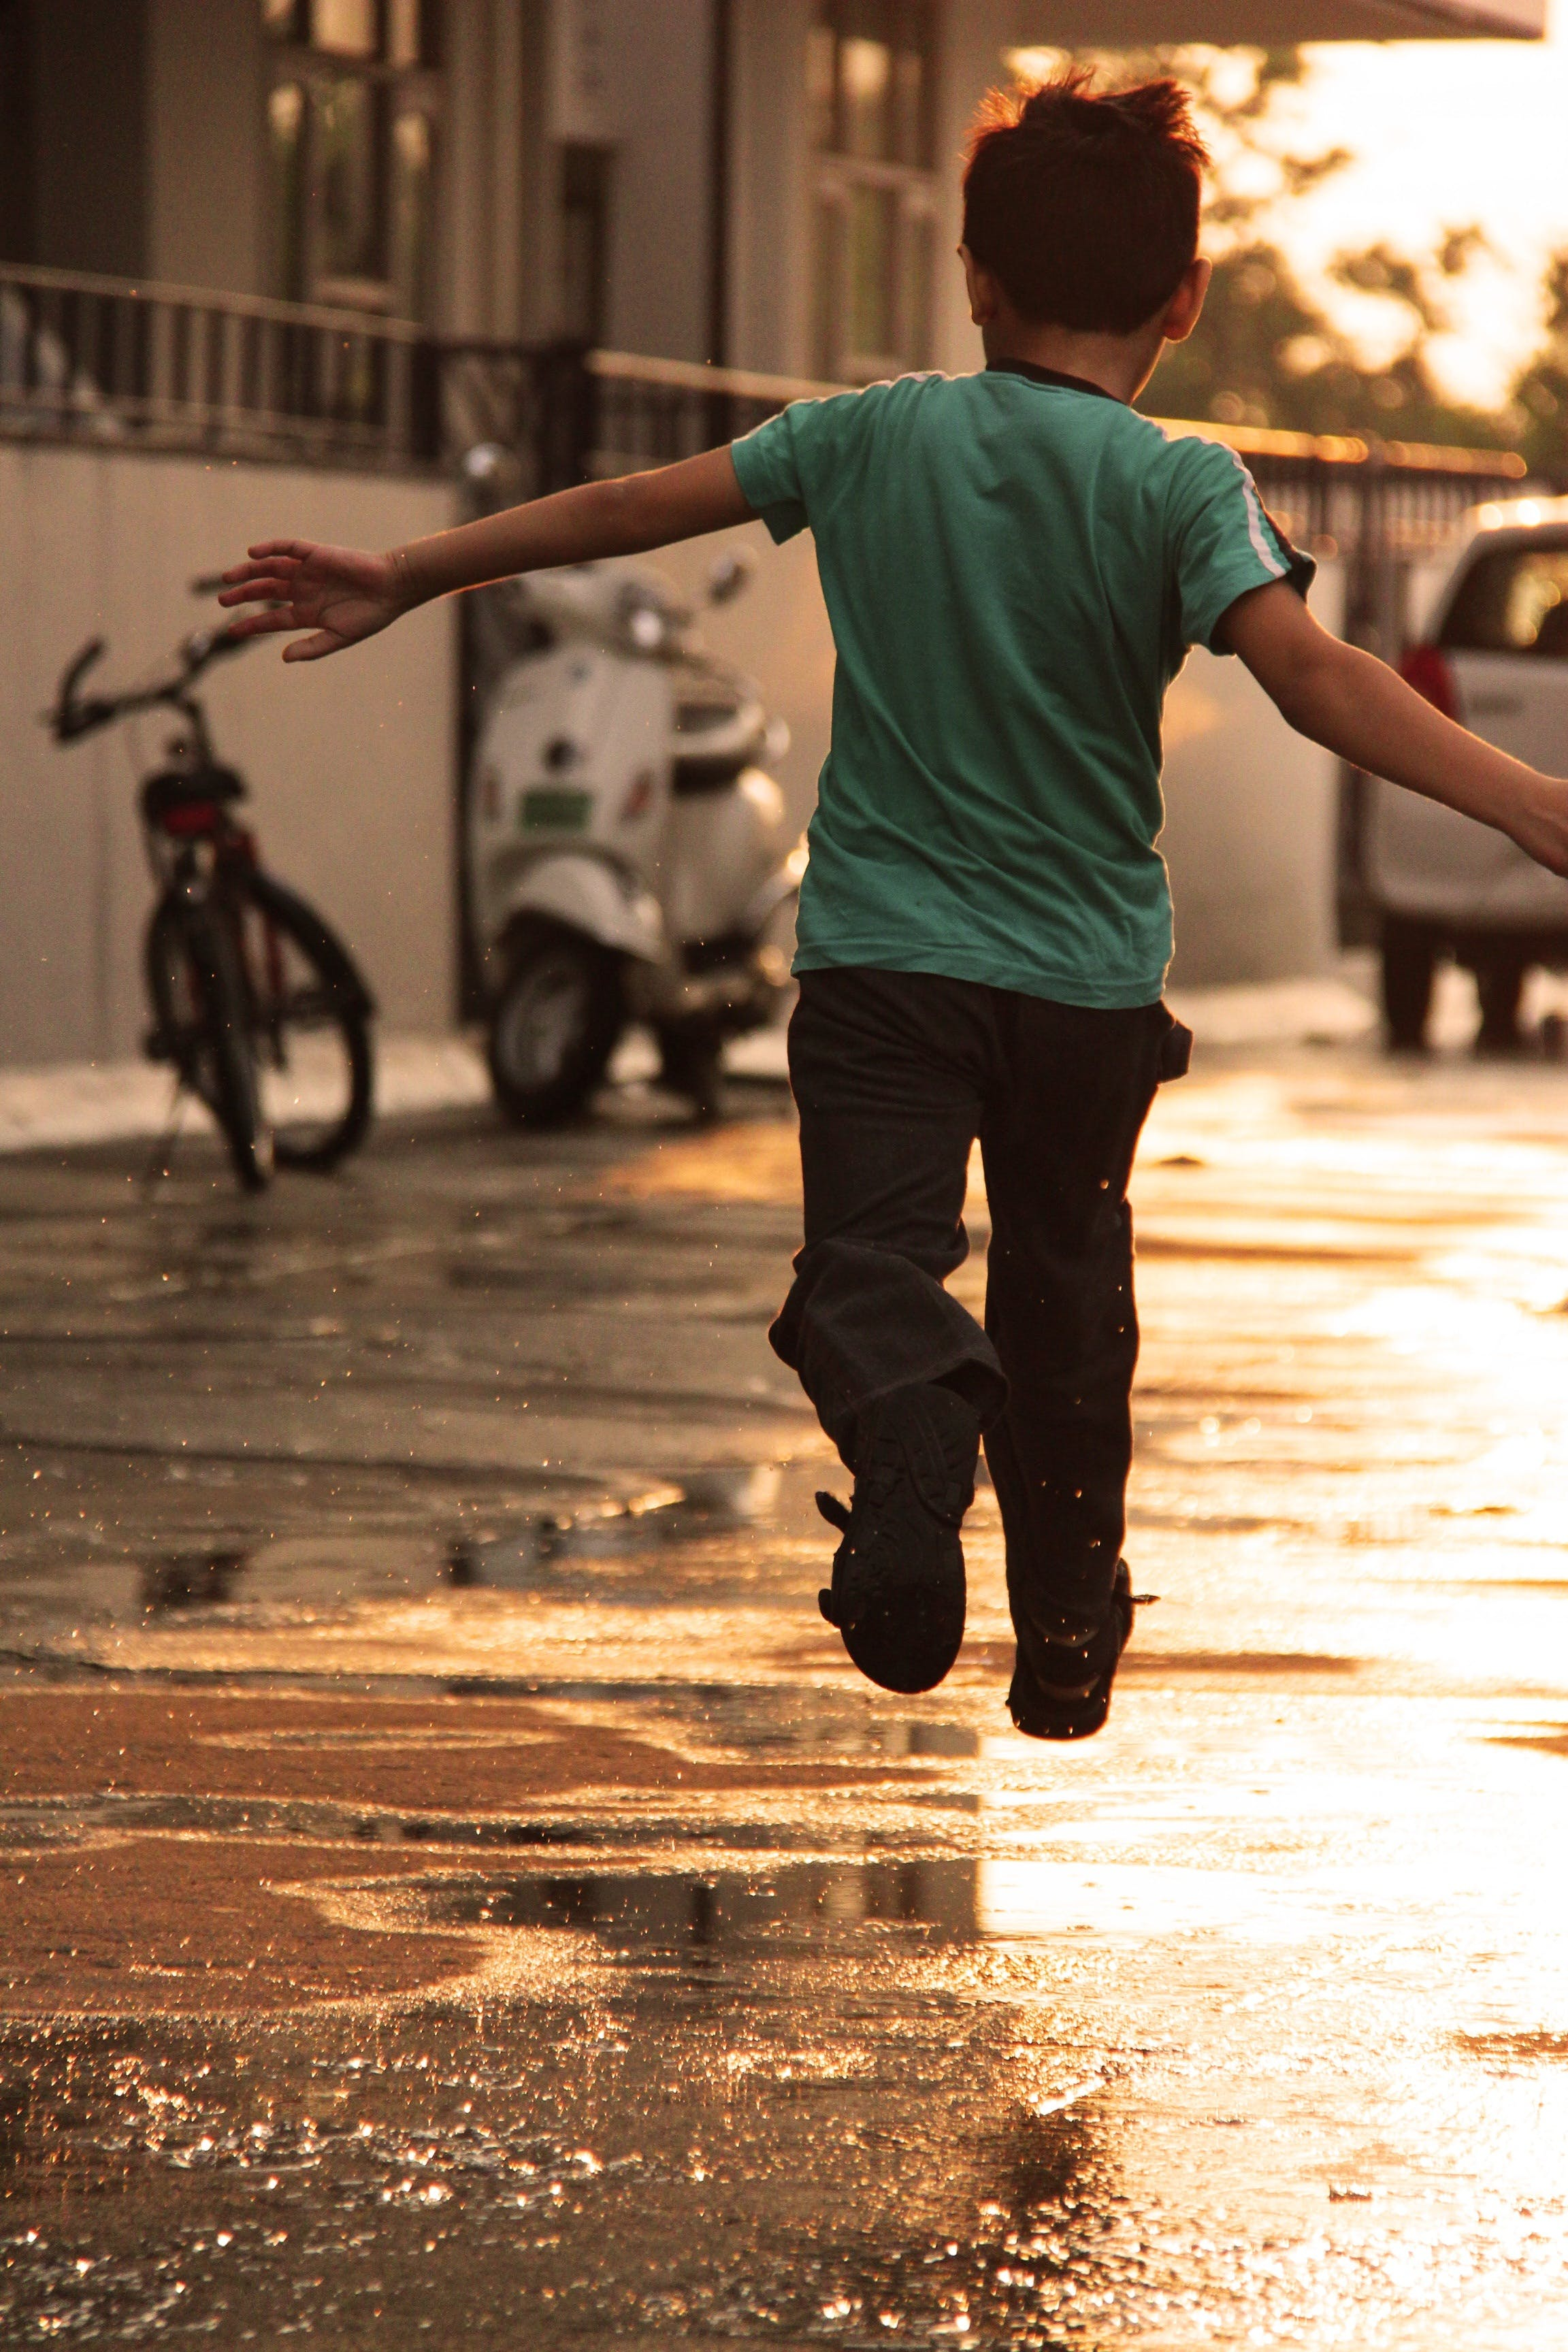 Boy in Green T Shirt Running on Wet Road during Daytime